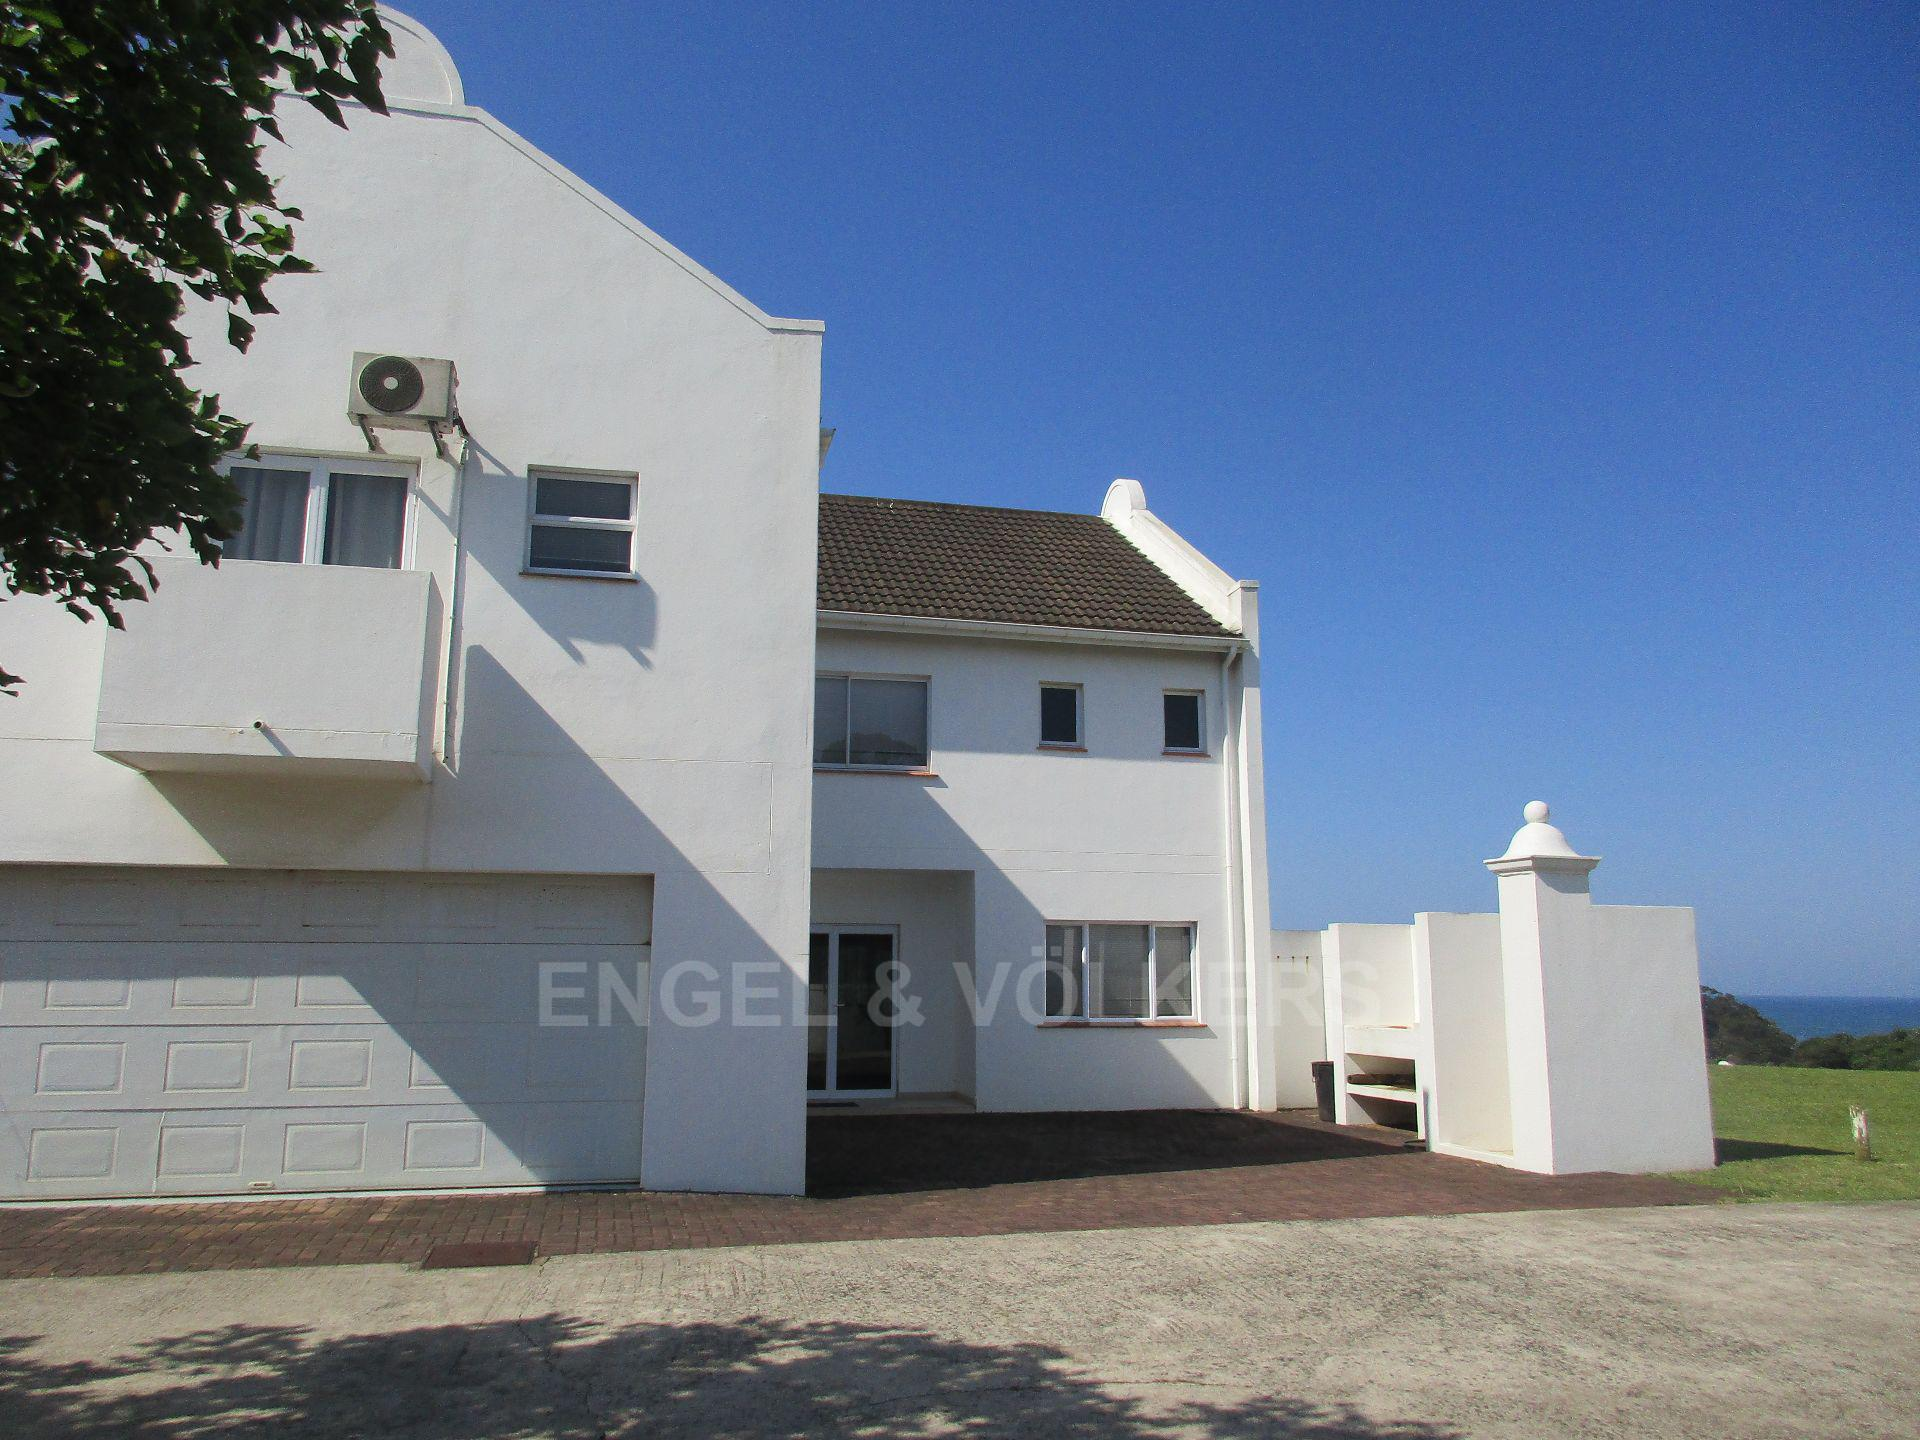 Property and Houses for sale in Port Edward, Duplex, 4 Bedrooms - ZAR 2,850,000